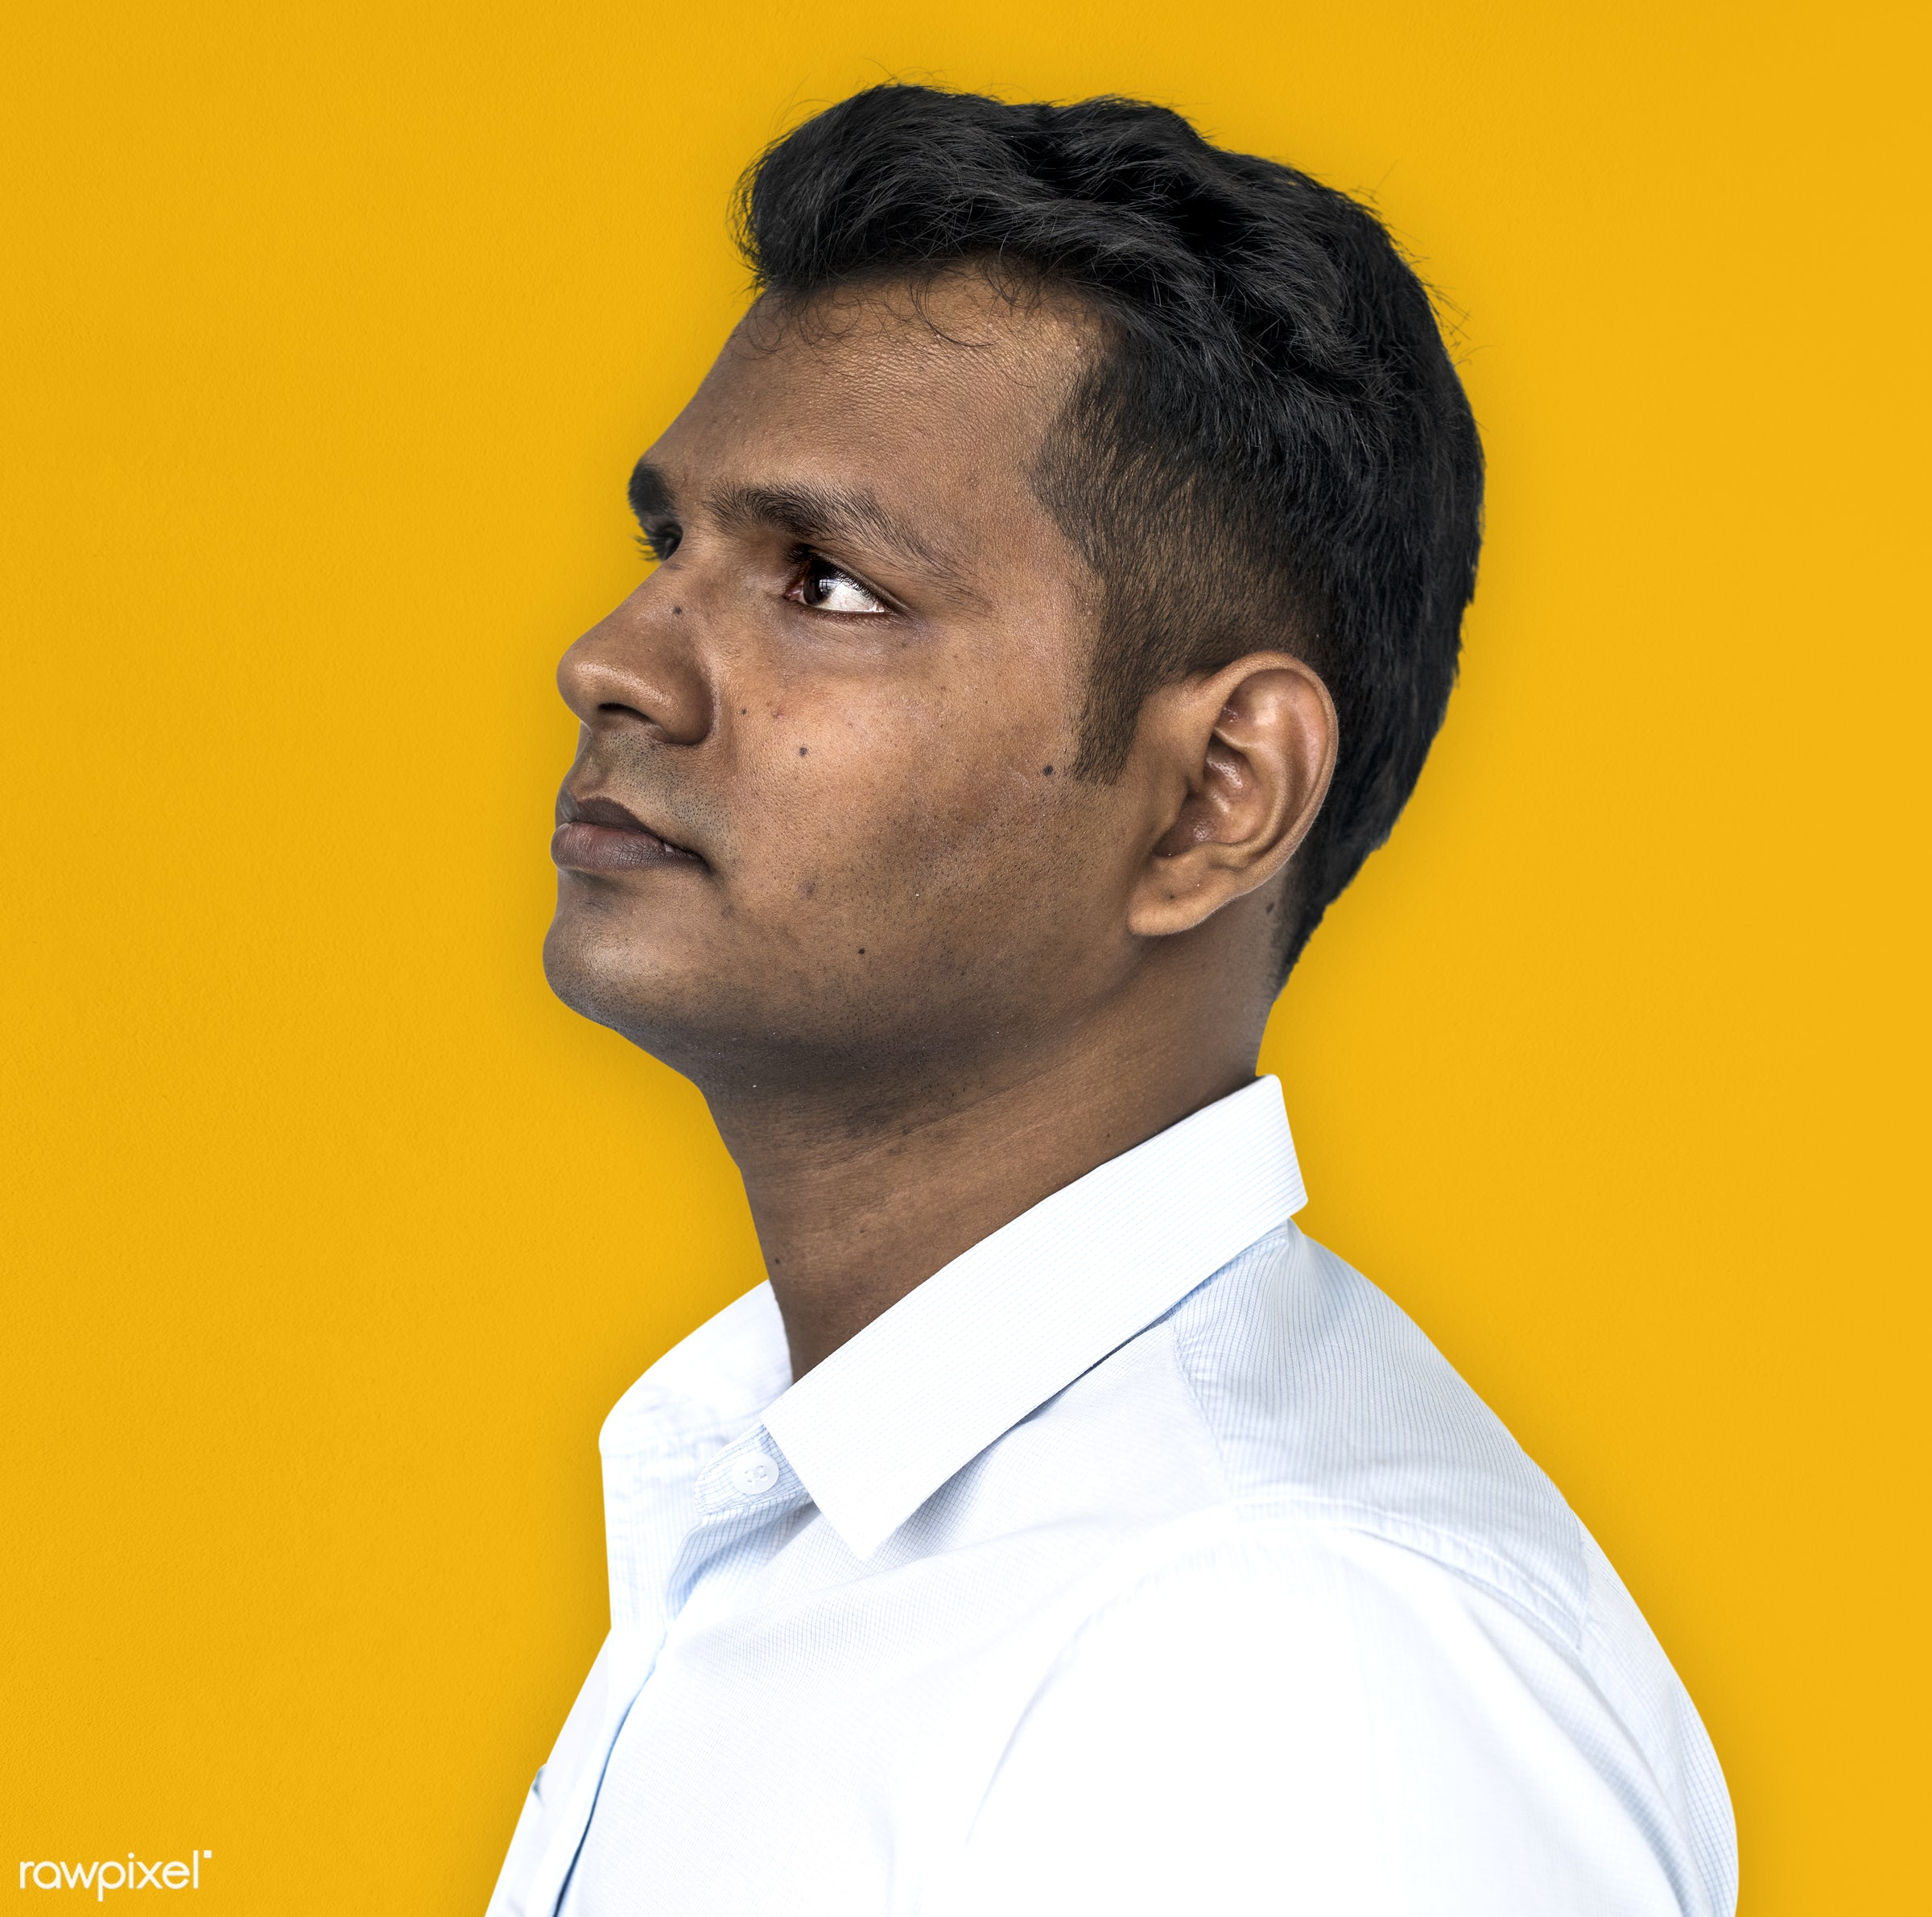 expression, intelligent, studio, person, wise, issue, yellow, people, business, looking, style, casual, serious, man, look,...